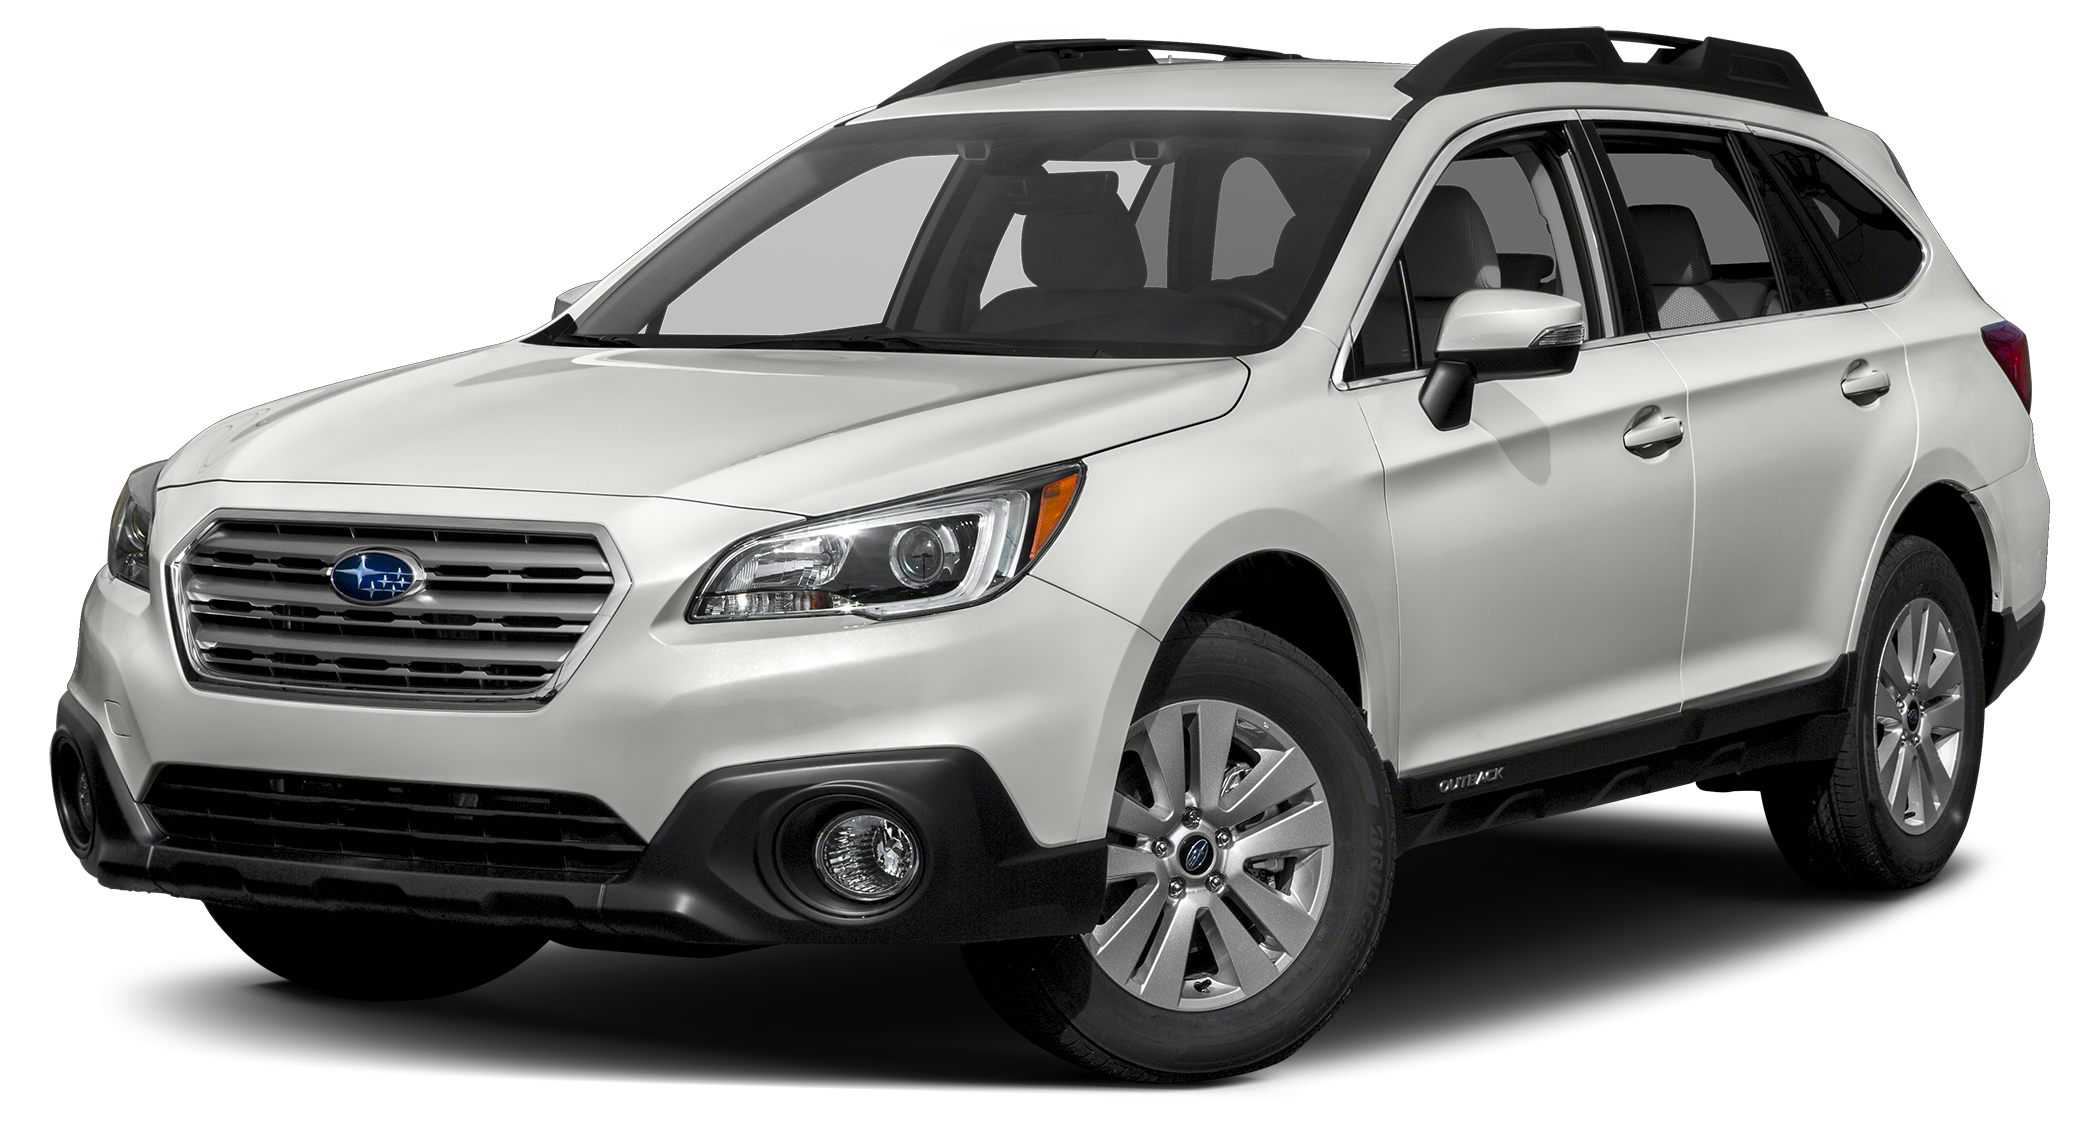 2017 subaru outback for sale in missoula mt 4s4bsadc2h3401231. Black Bedroom Furniture Sets. Home Design Ideas